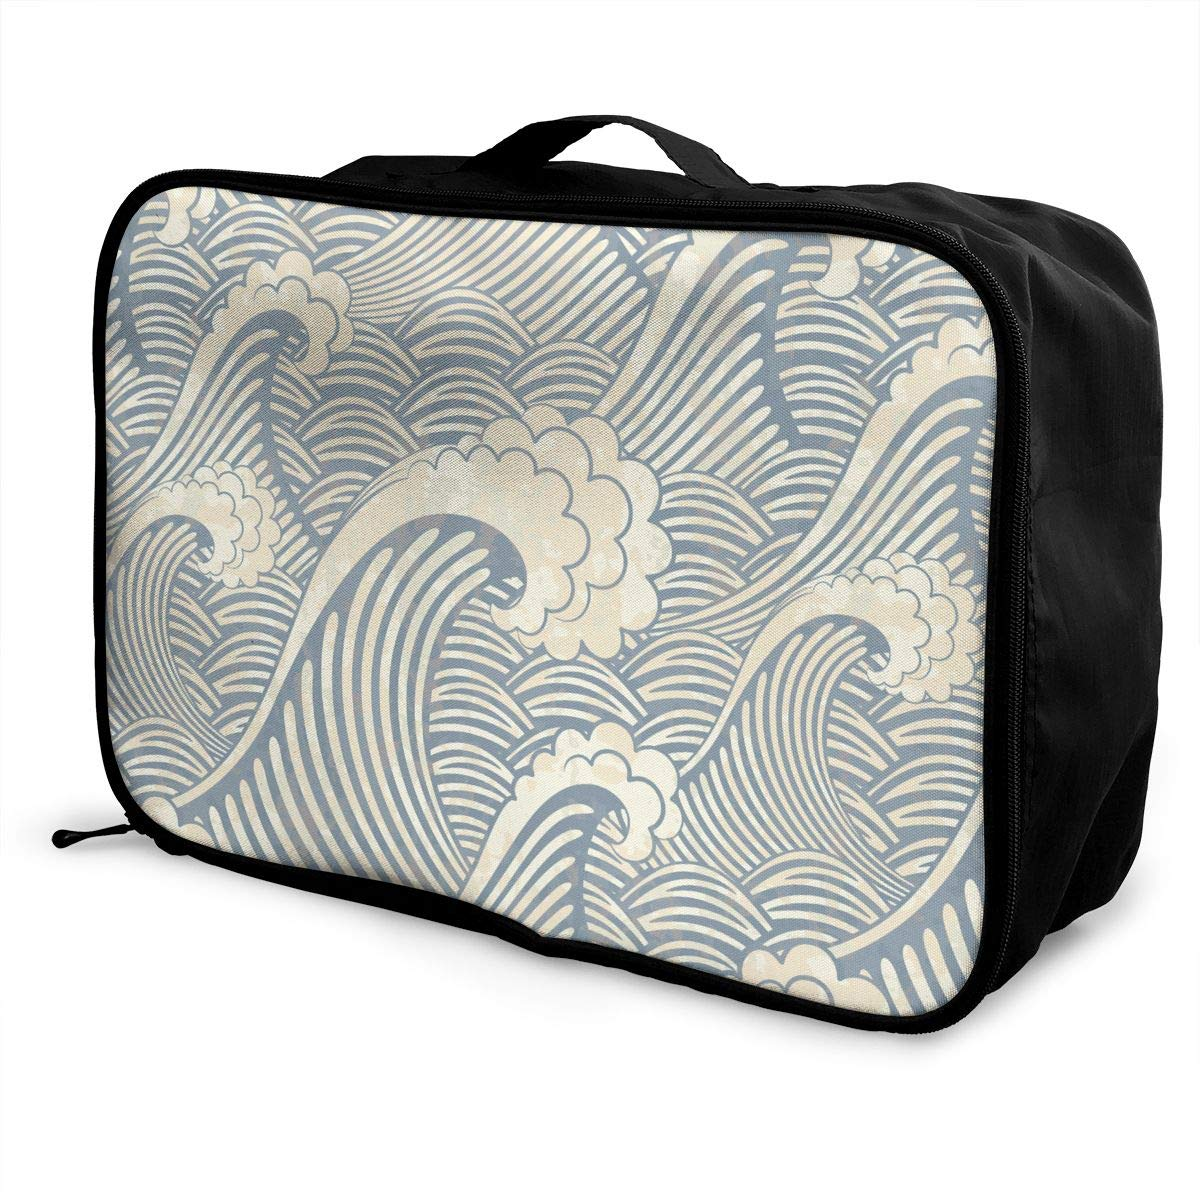 YueLJB Ocean Wave Gray Lightweight Large Capacity Portable Luggage Bag Travel Duffel Bag Storage Carry Luggage Duffle Tote Bag